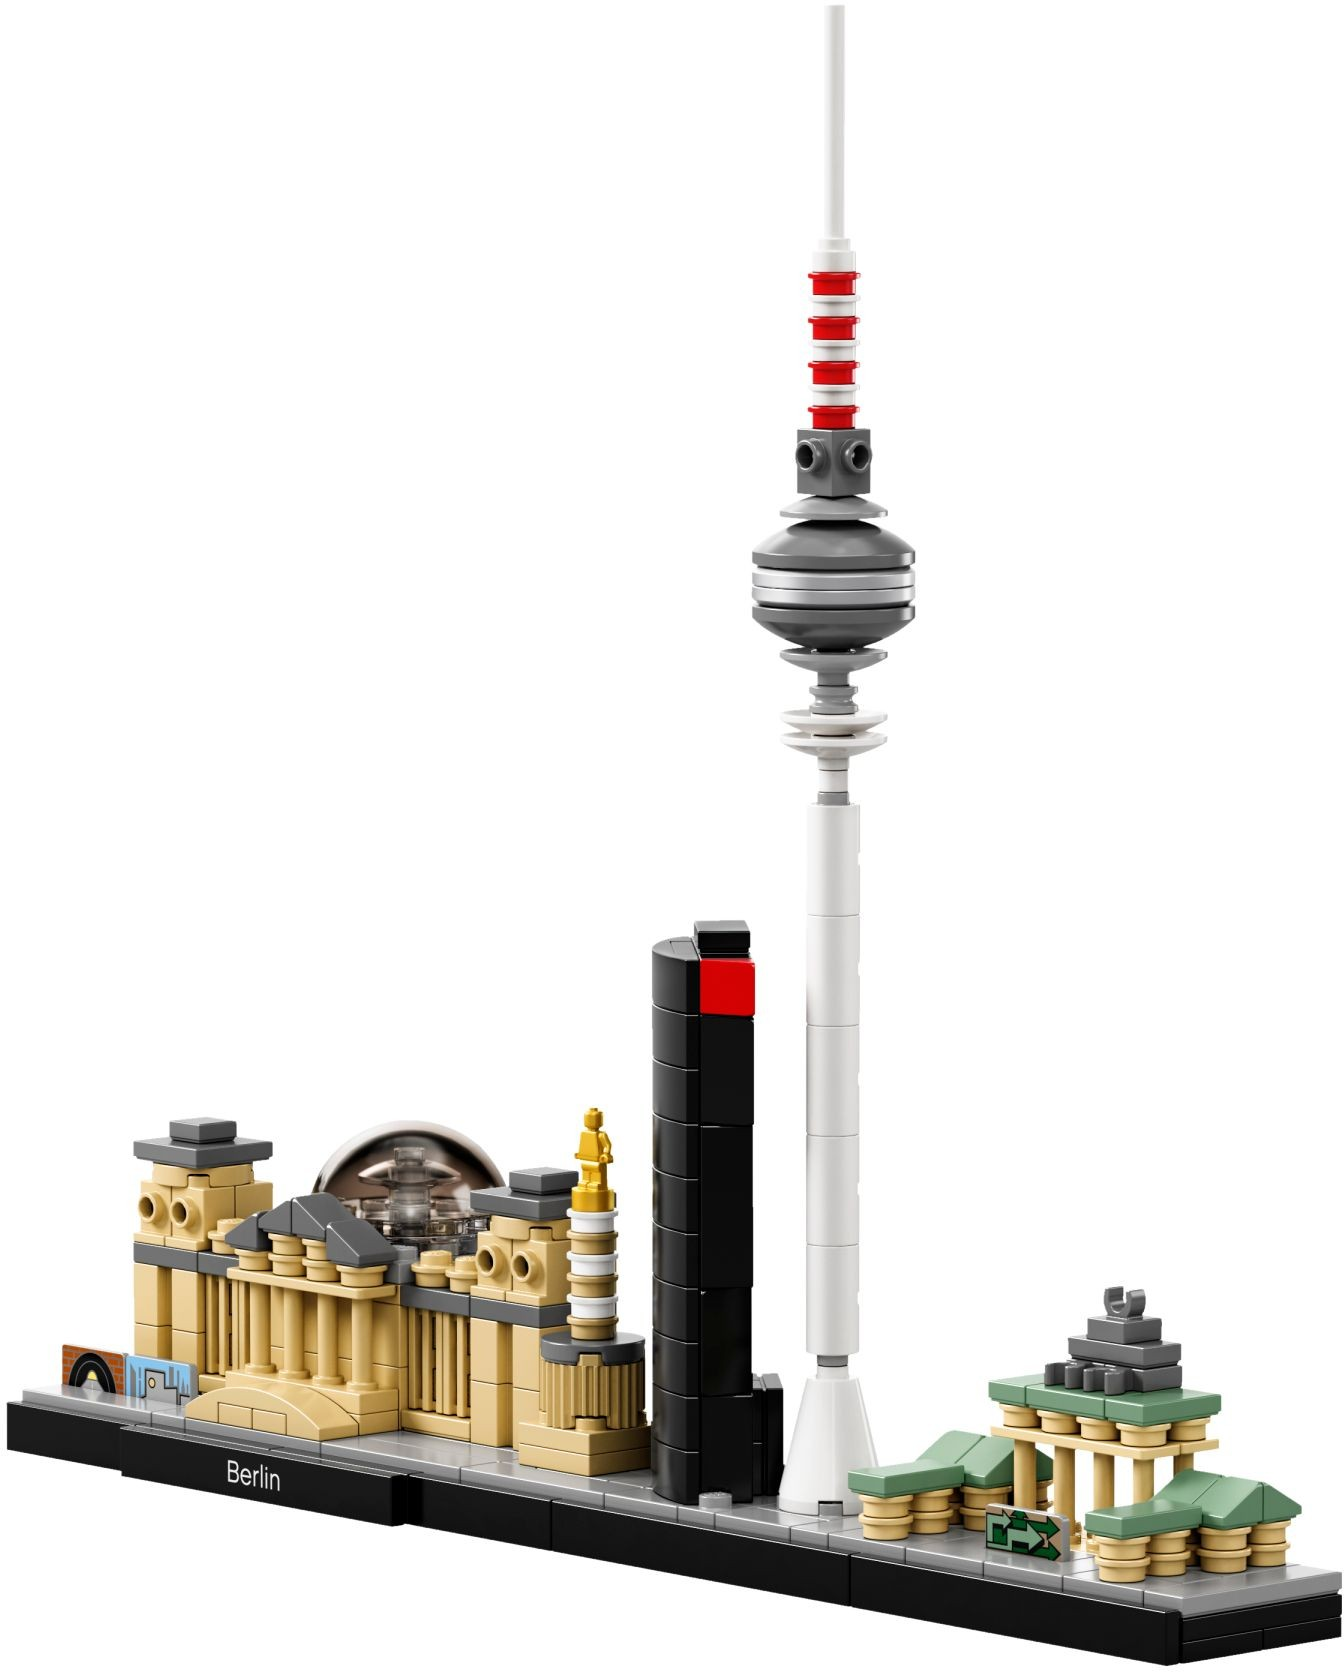 lego berlin architecture sets york venice germany bricks skyline which gate